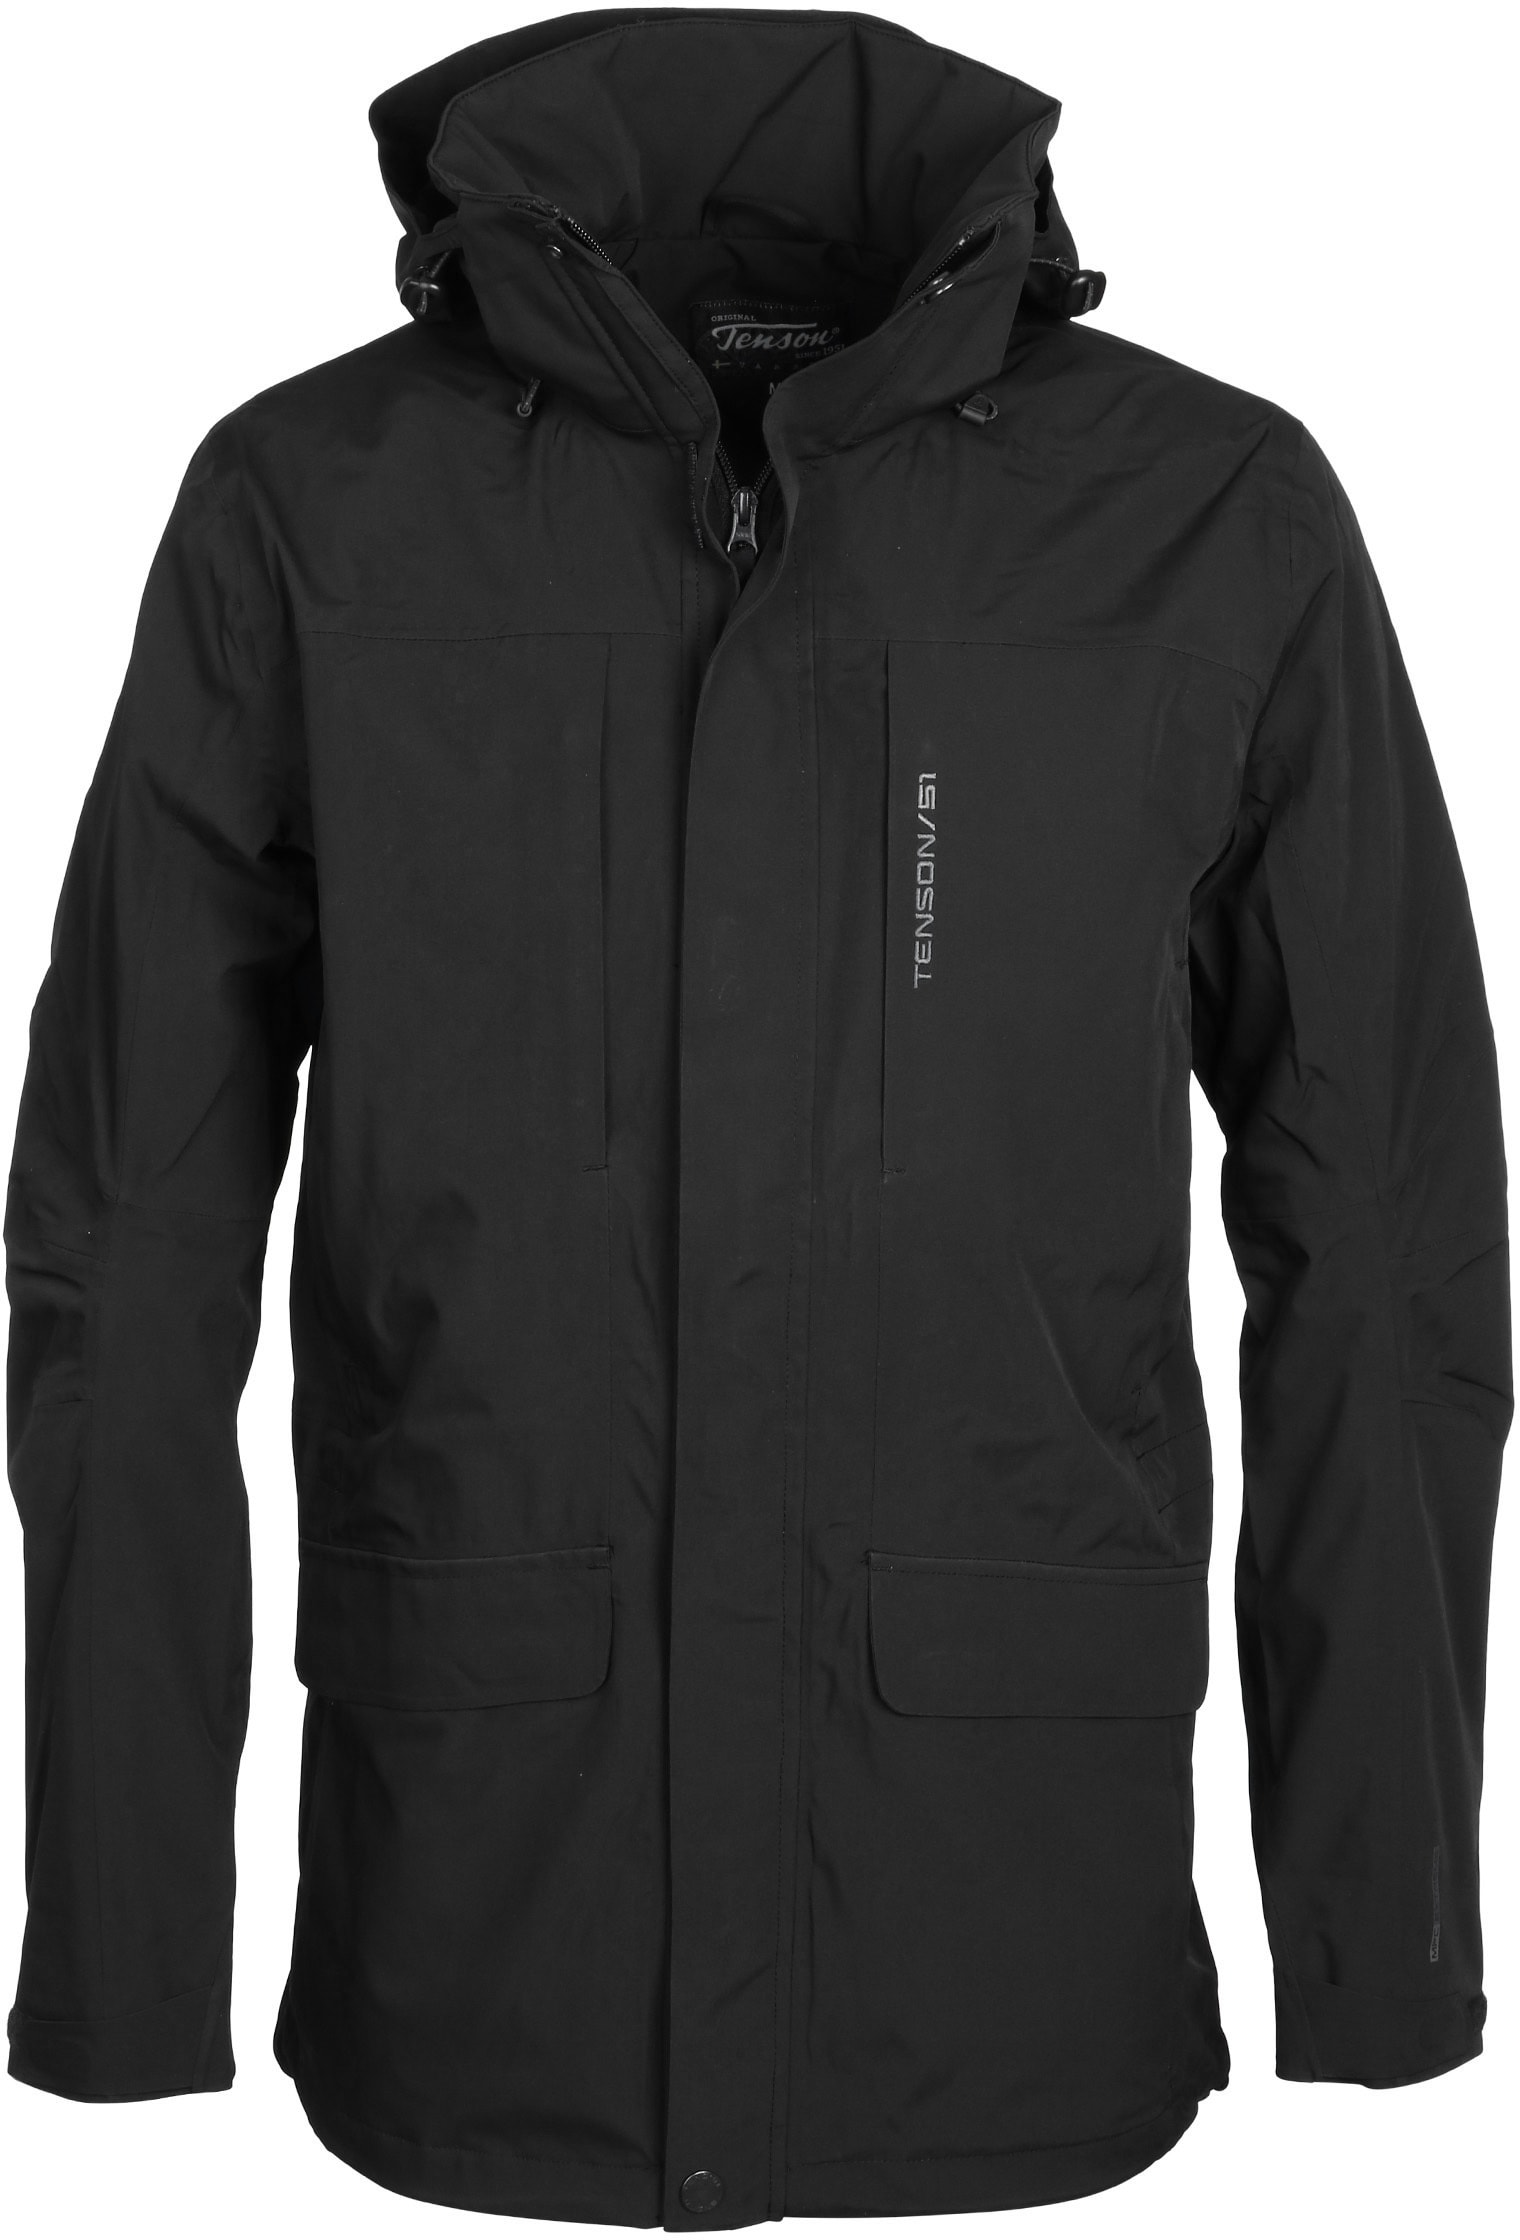 Tenson Hiley Jacket Black 5013436-999 Hiley Black order online ... 88d3bc4ea2